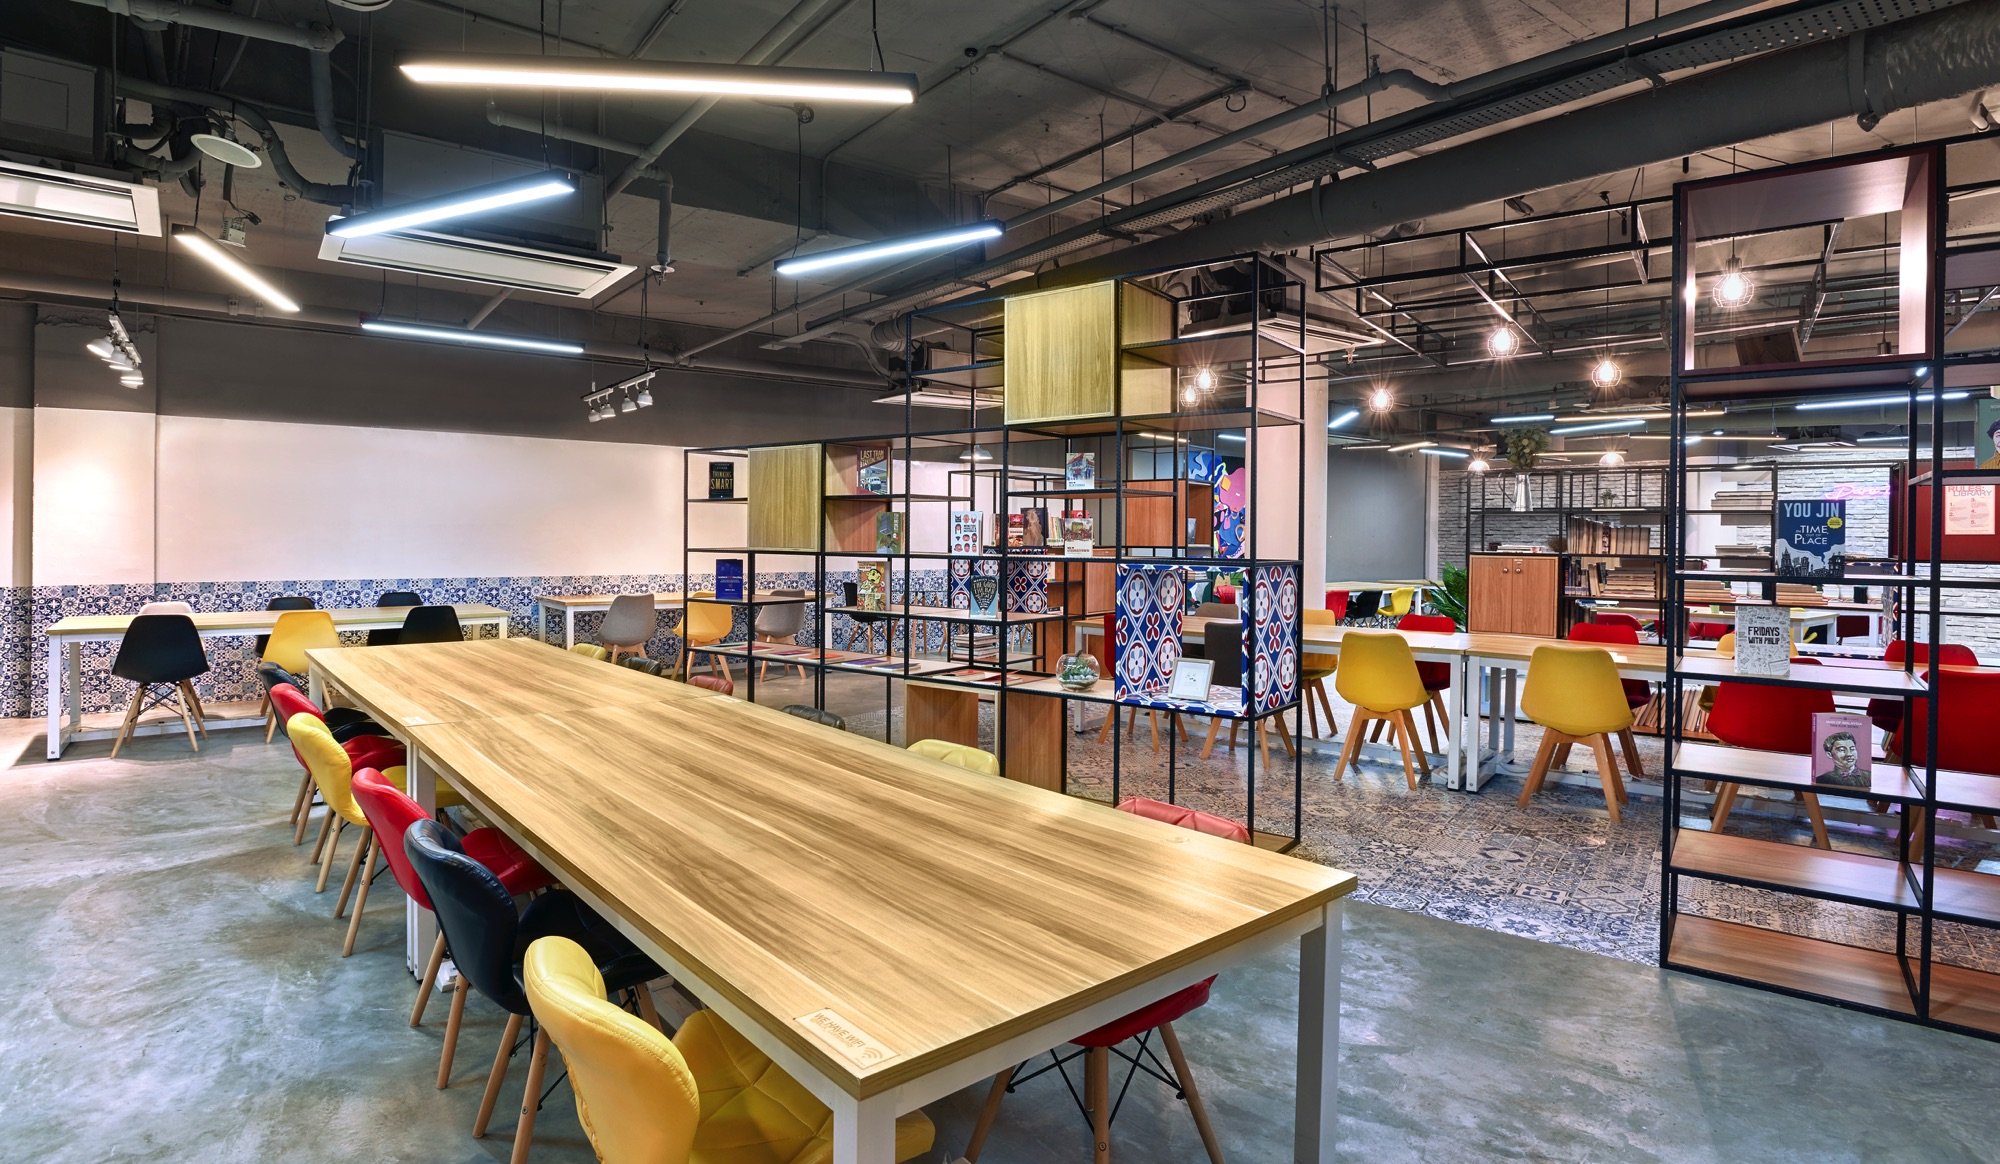 squarerooms mox coworking space comaking singapore creative studio shared office